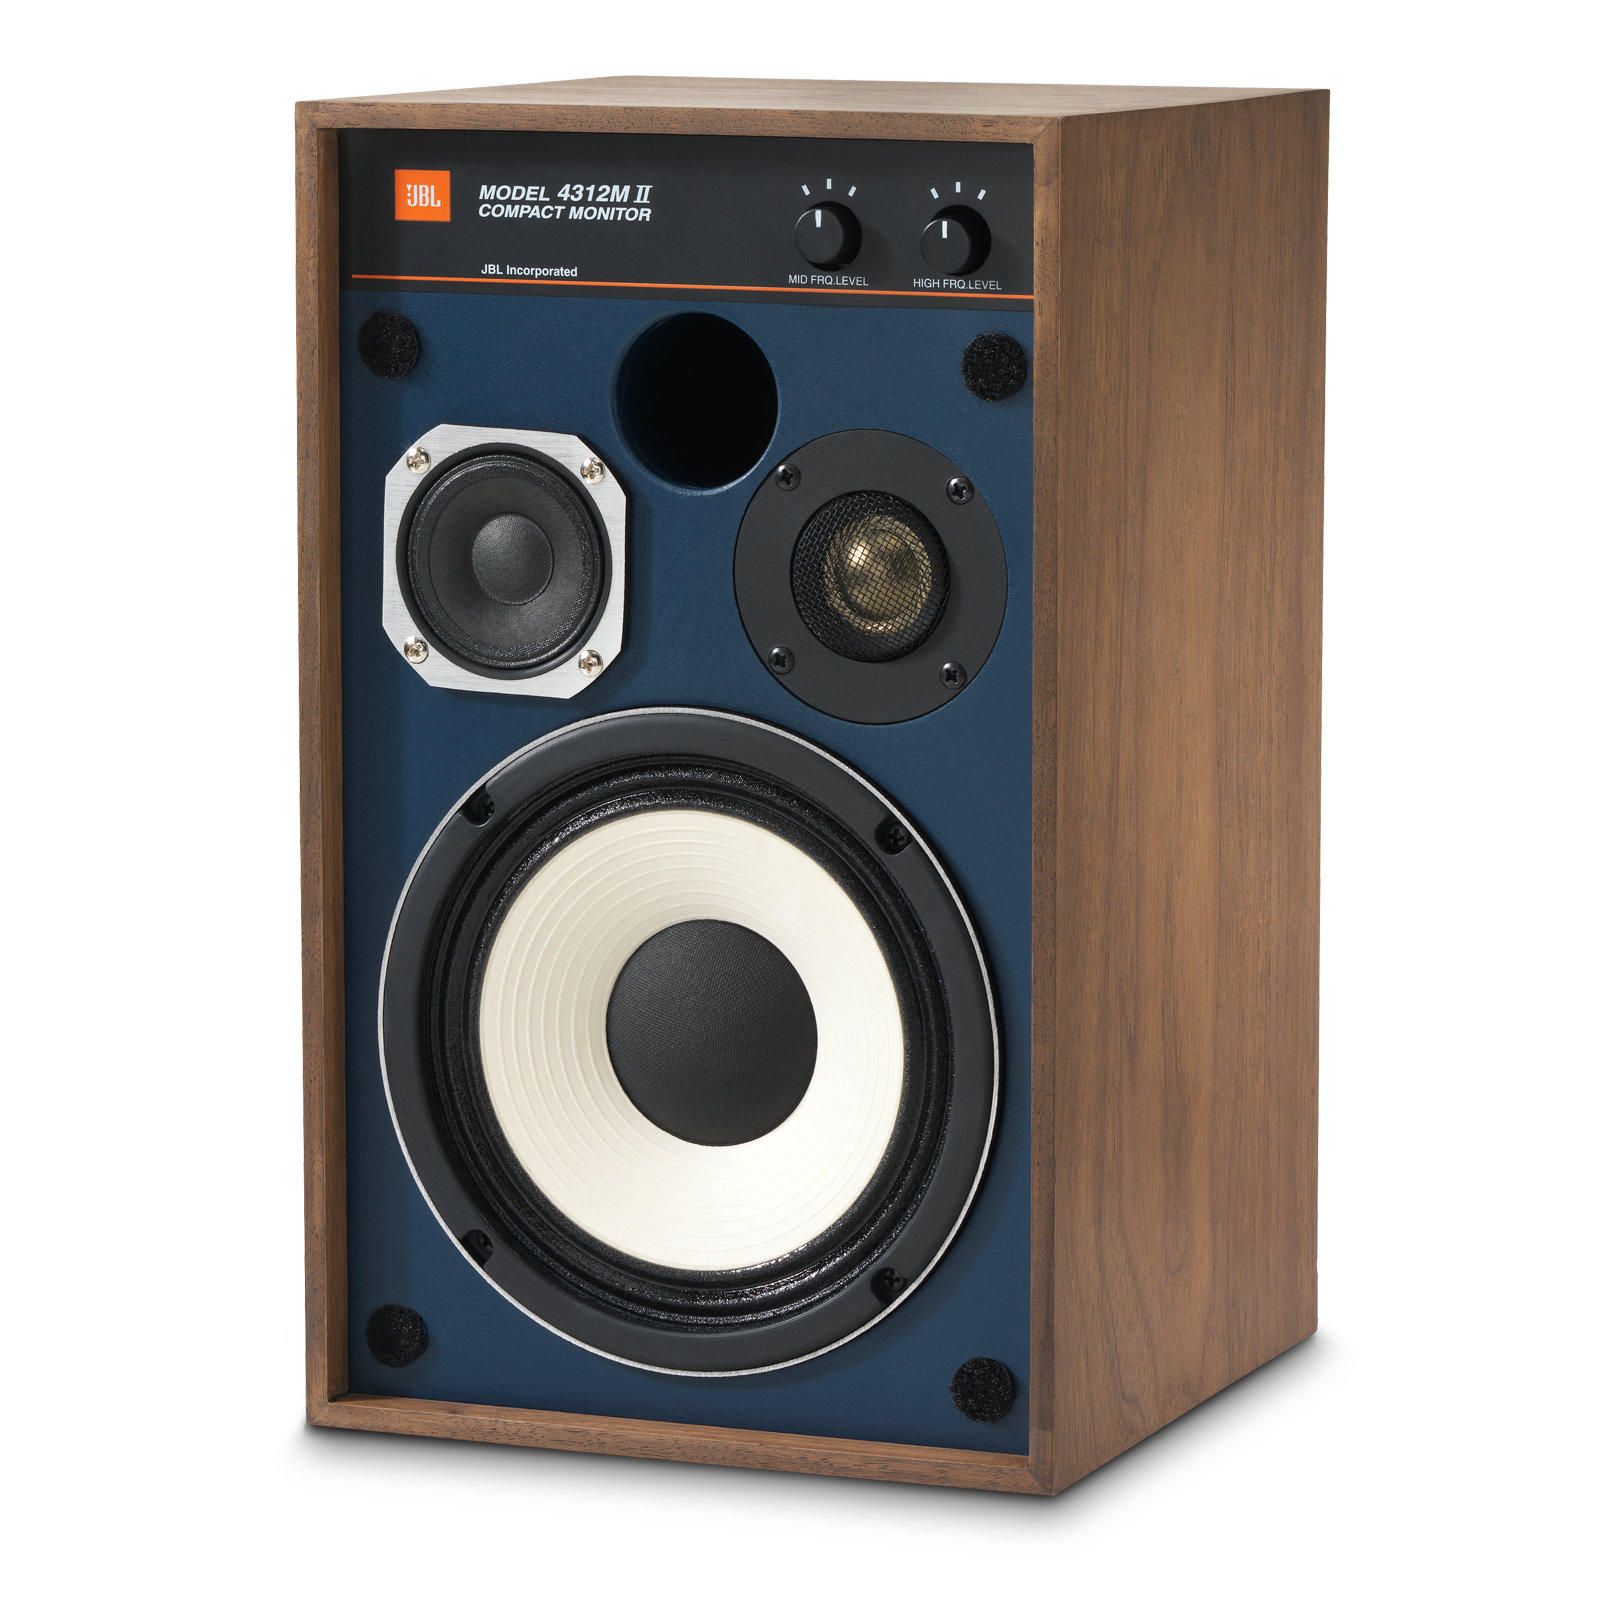 "4312MII - Brown - 5.25"" 3-way Studio Monitor Loudspeaker - Detailshot 4"